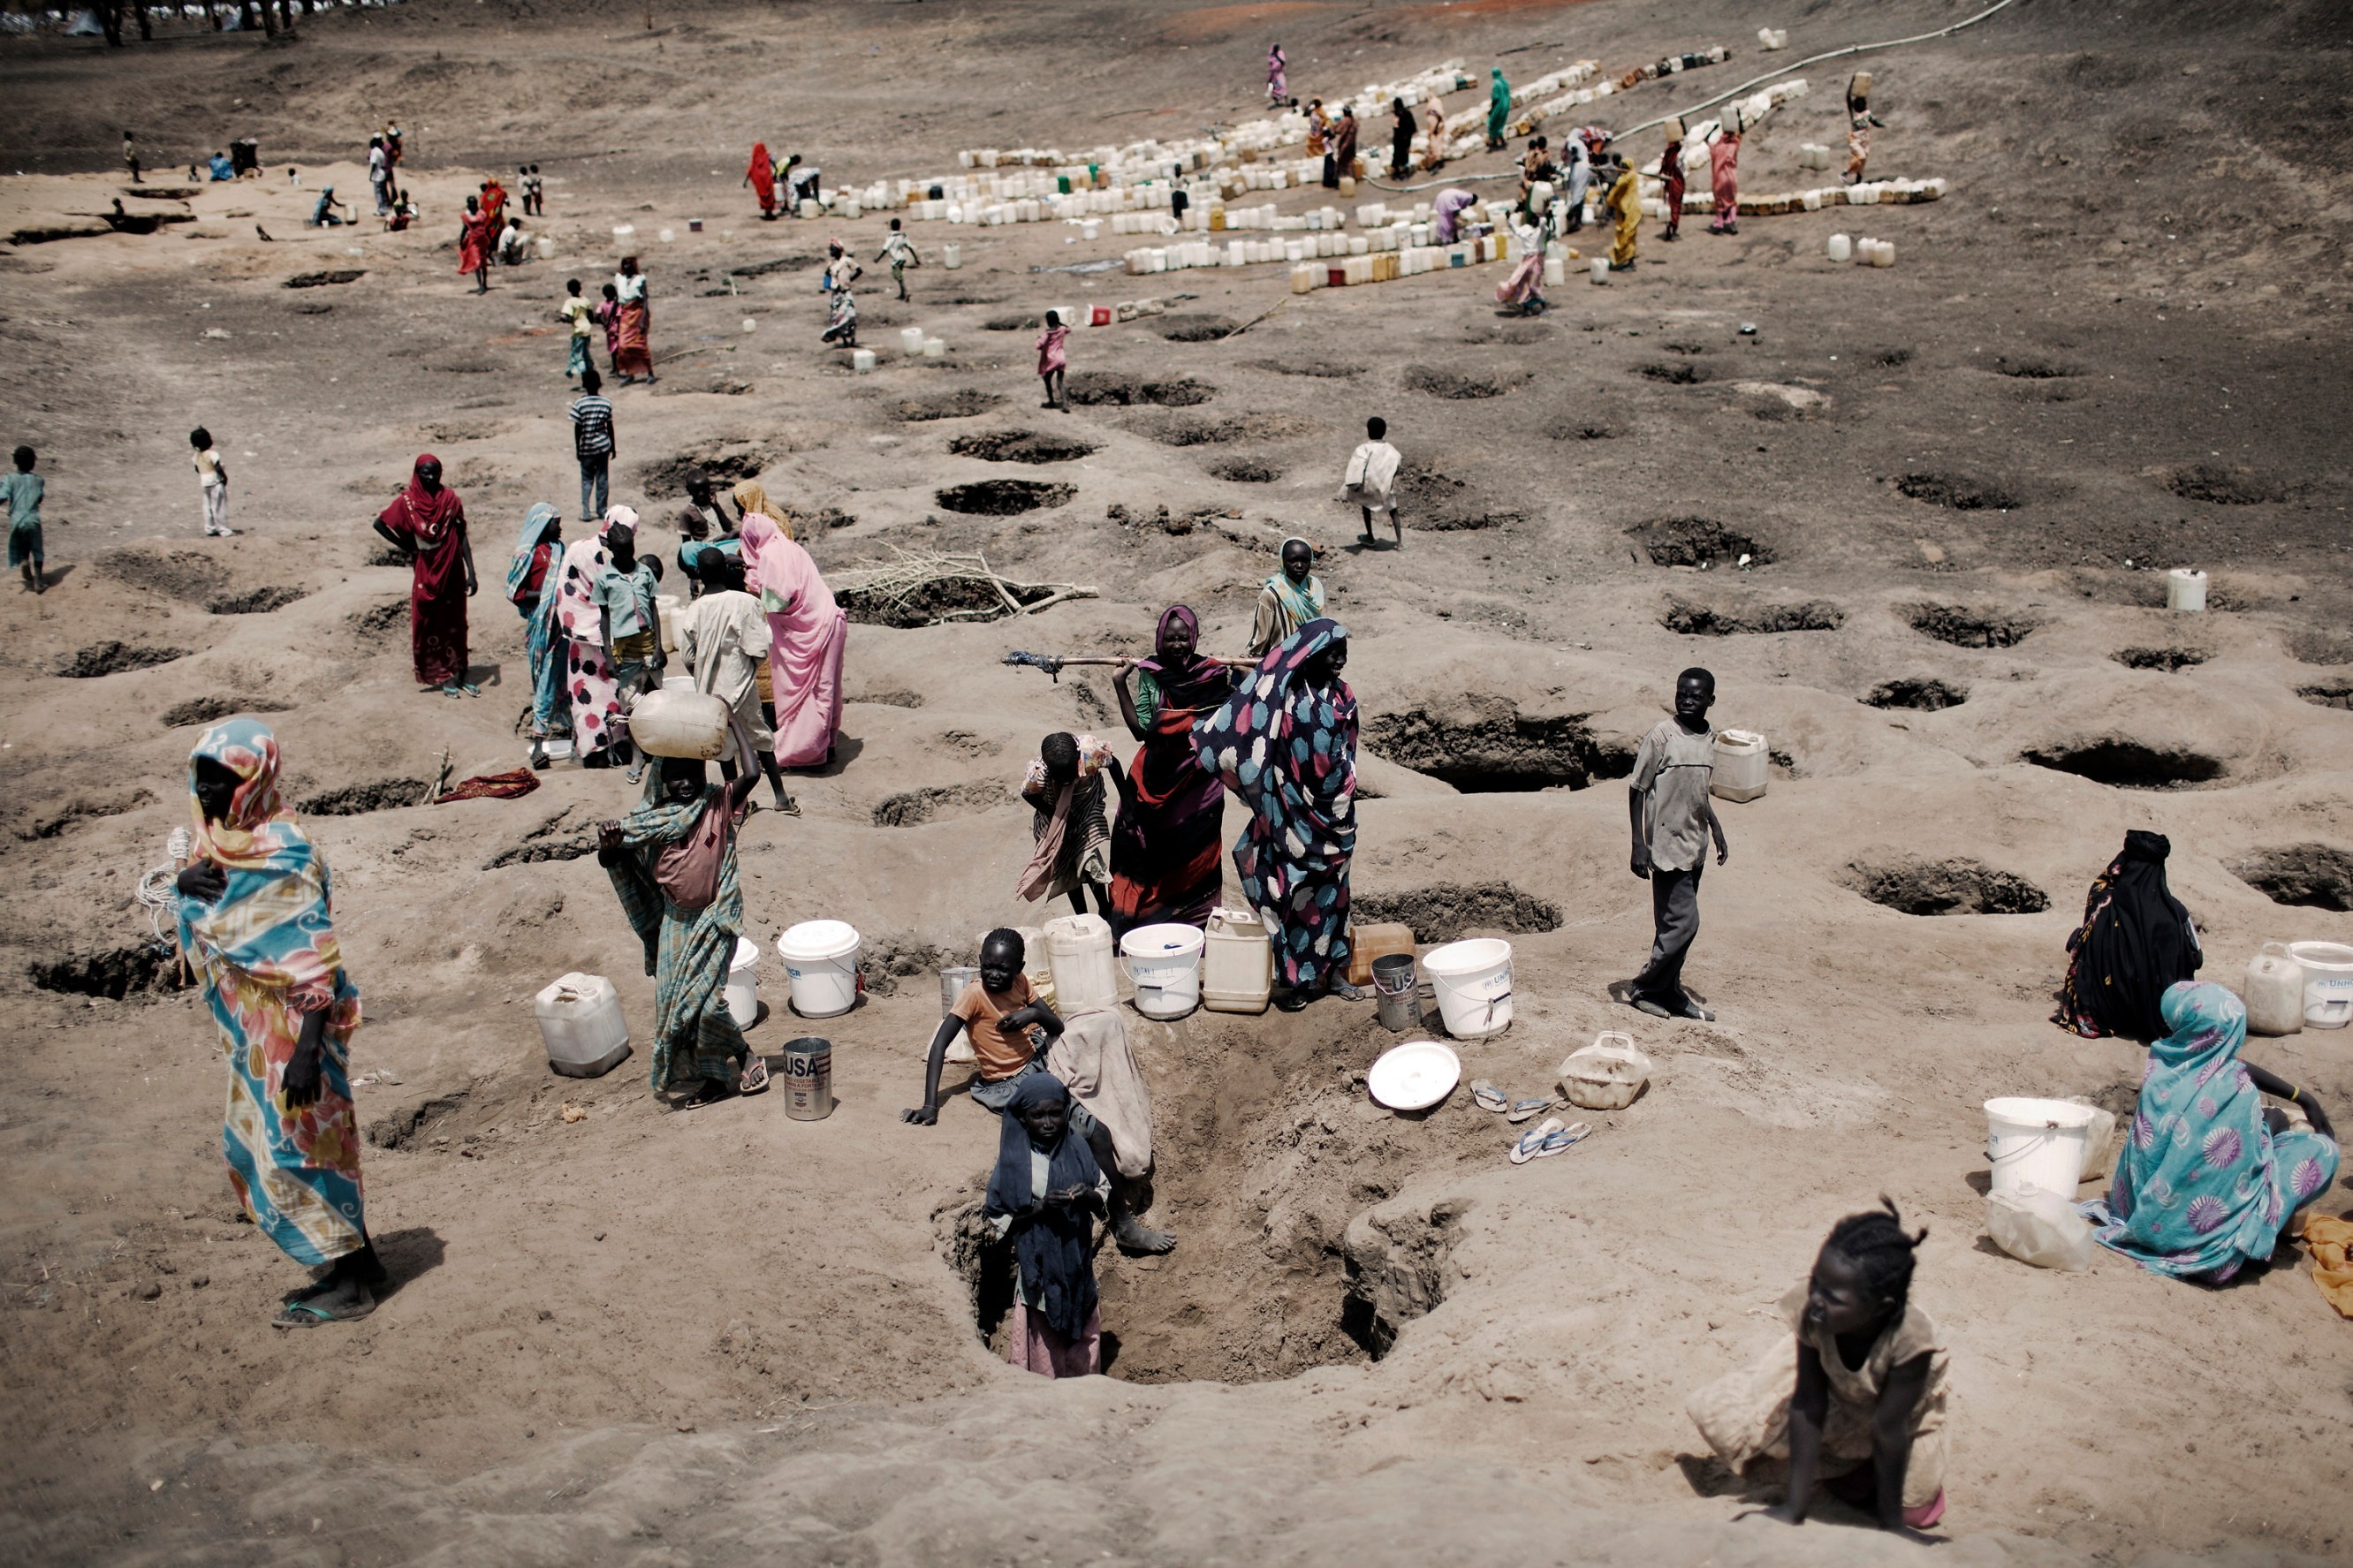 People collect water from various wells dug by refugees in Jammam camp. With waiting times at official camp water stations of up to six hours, camp dwellers have started to dig for new water sources.